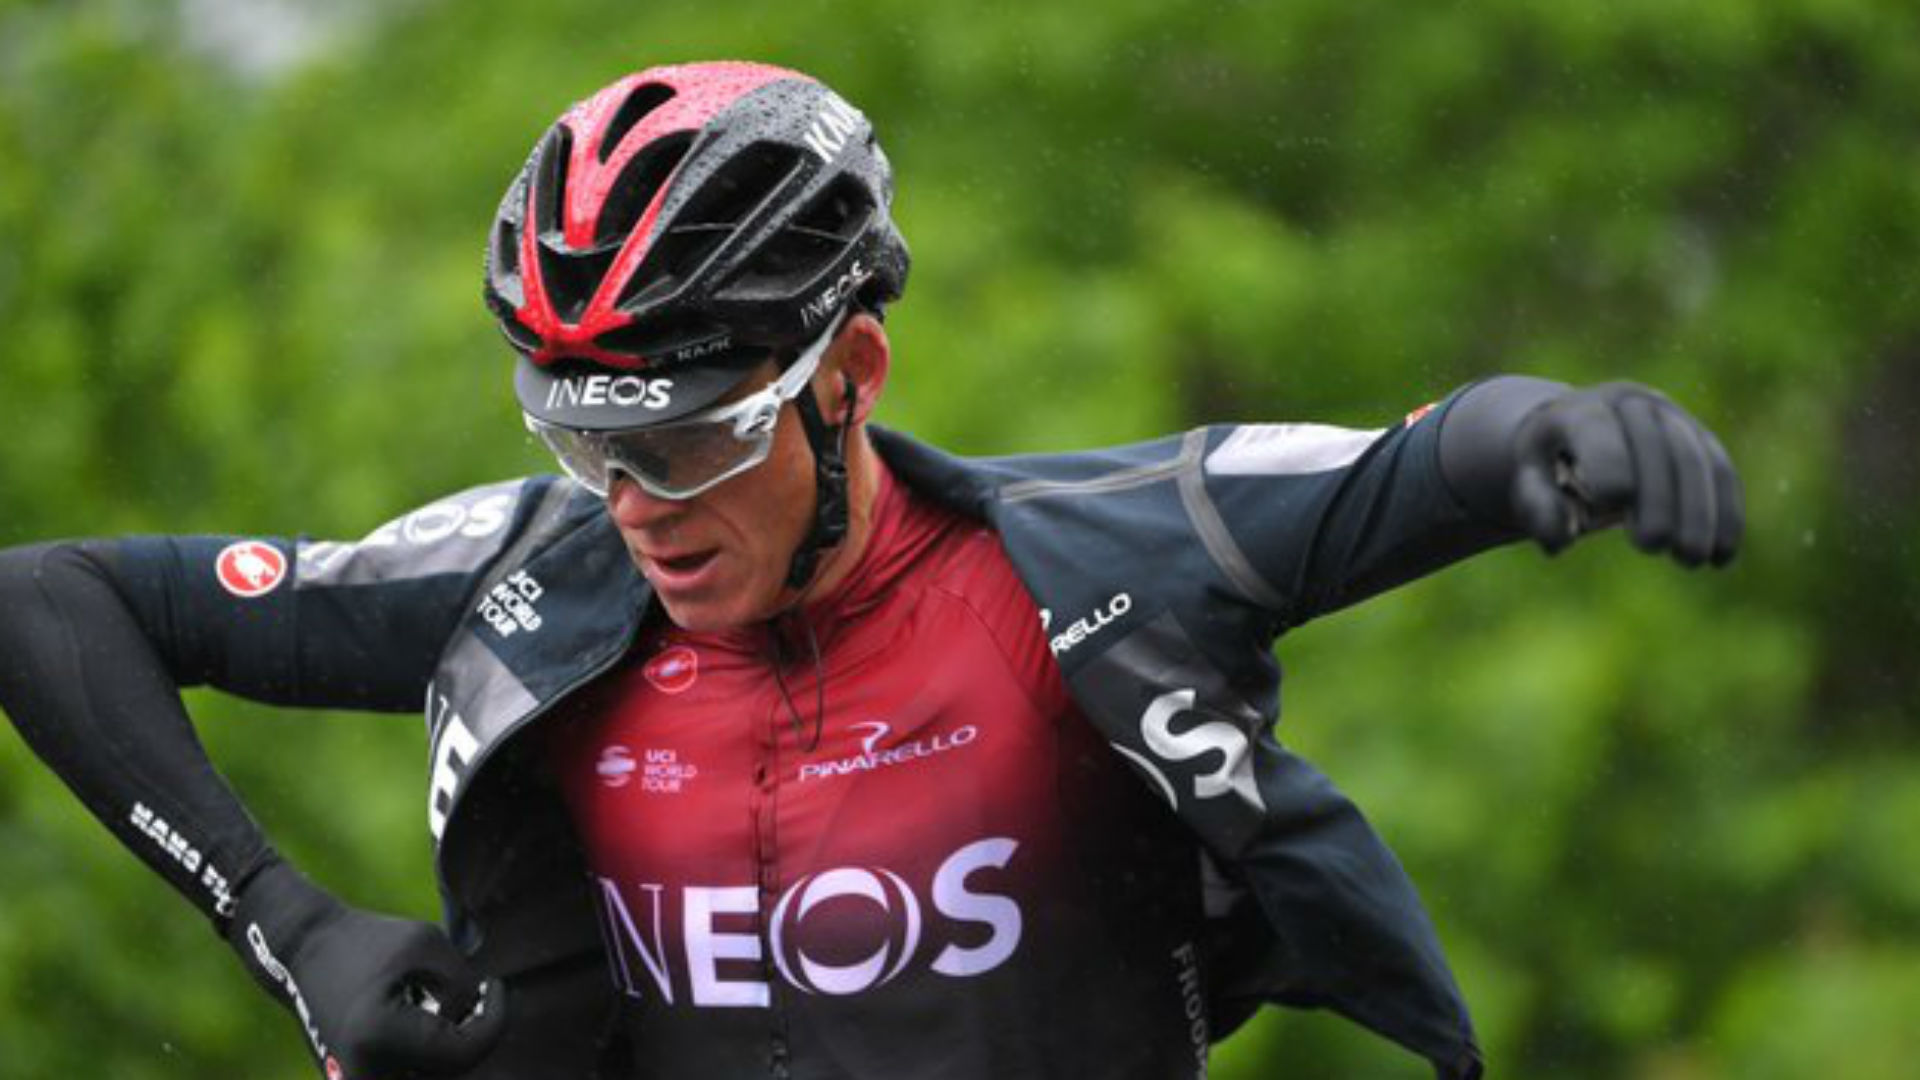 There was concern over Chris Froome after he was taken to hospital following a crash in a recon ride at the Criterium du Dauphine.